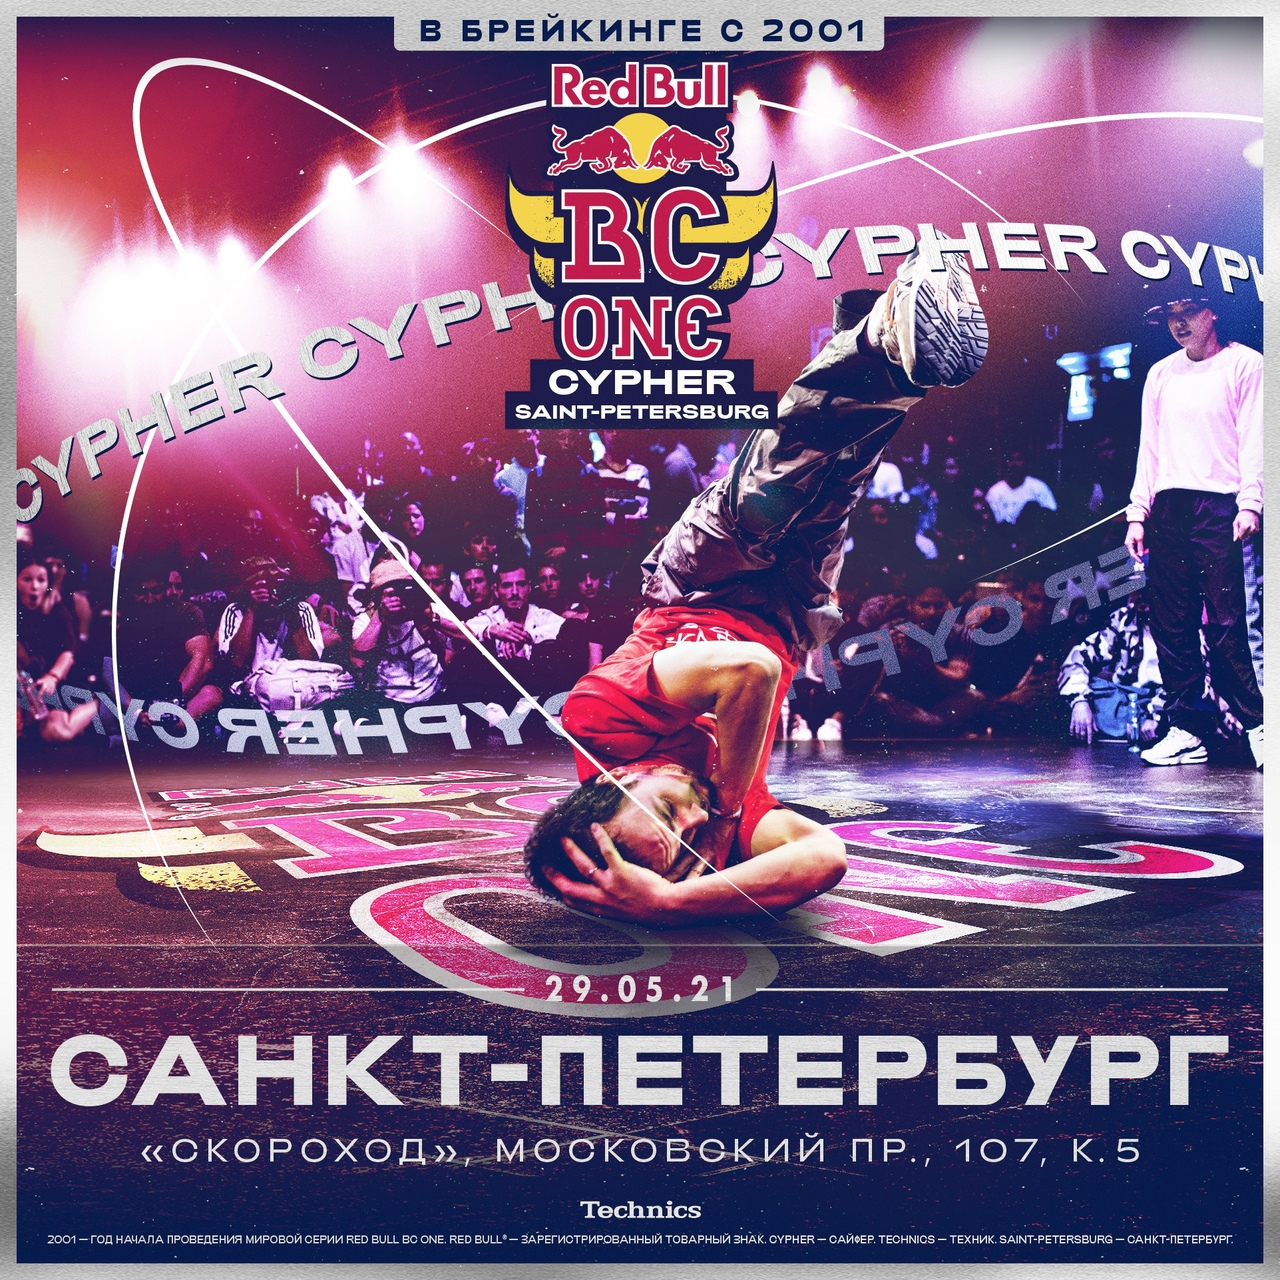 RED BULL BC ONE CYPHER ST.PETERSBURG UNDER SUPPORT OF NORD VIBE PROJECT!